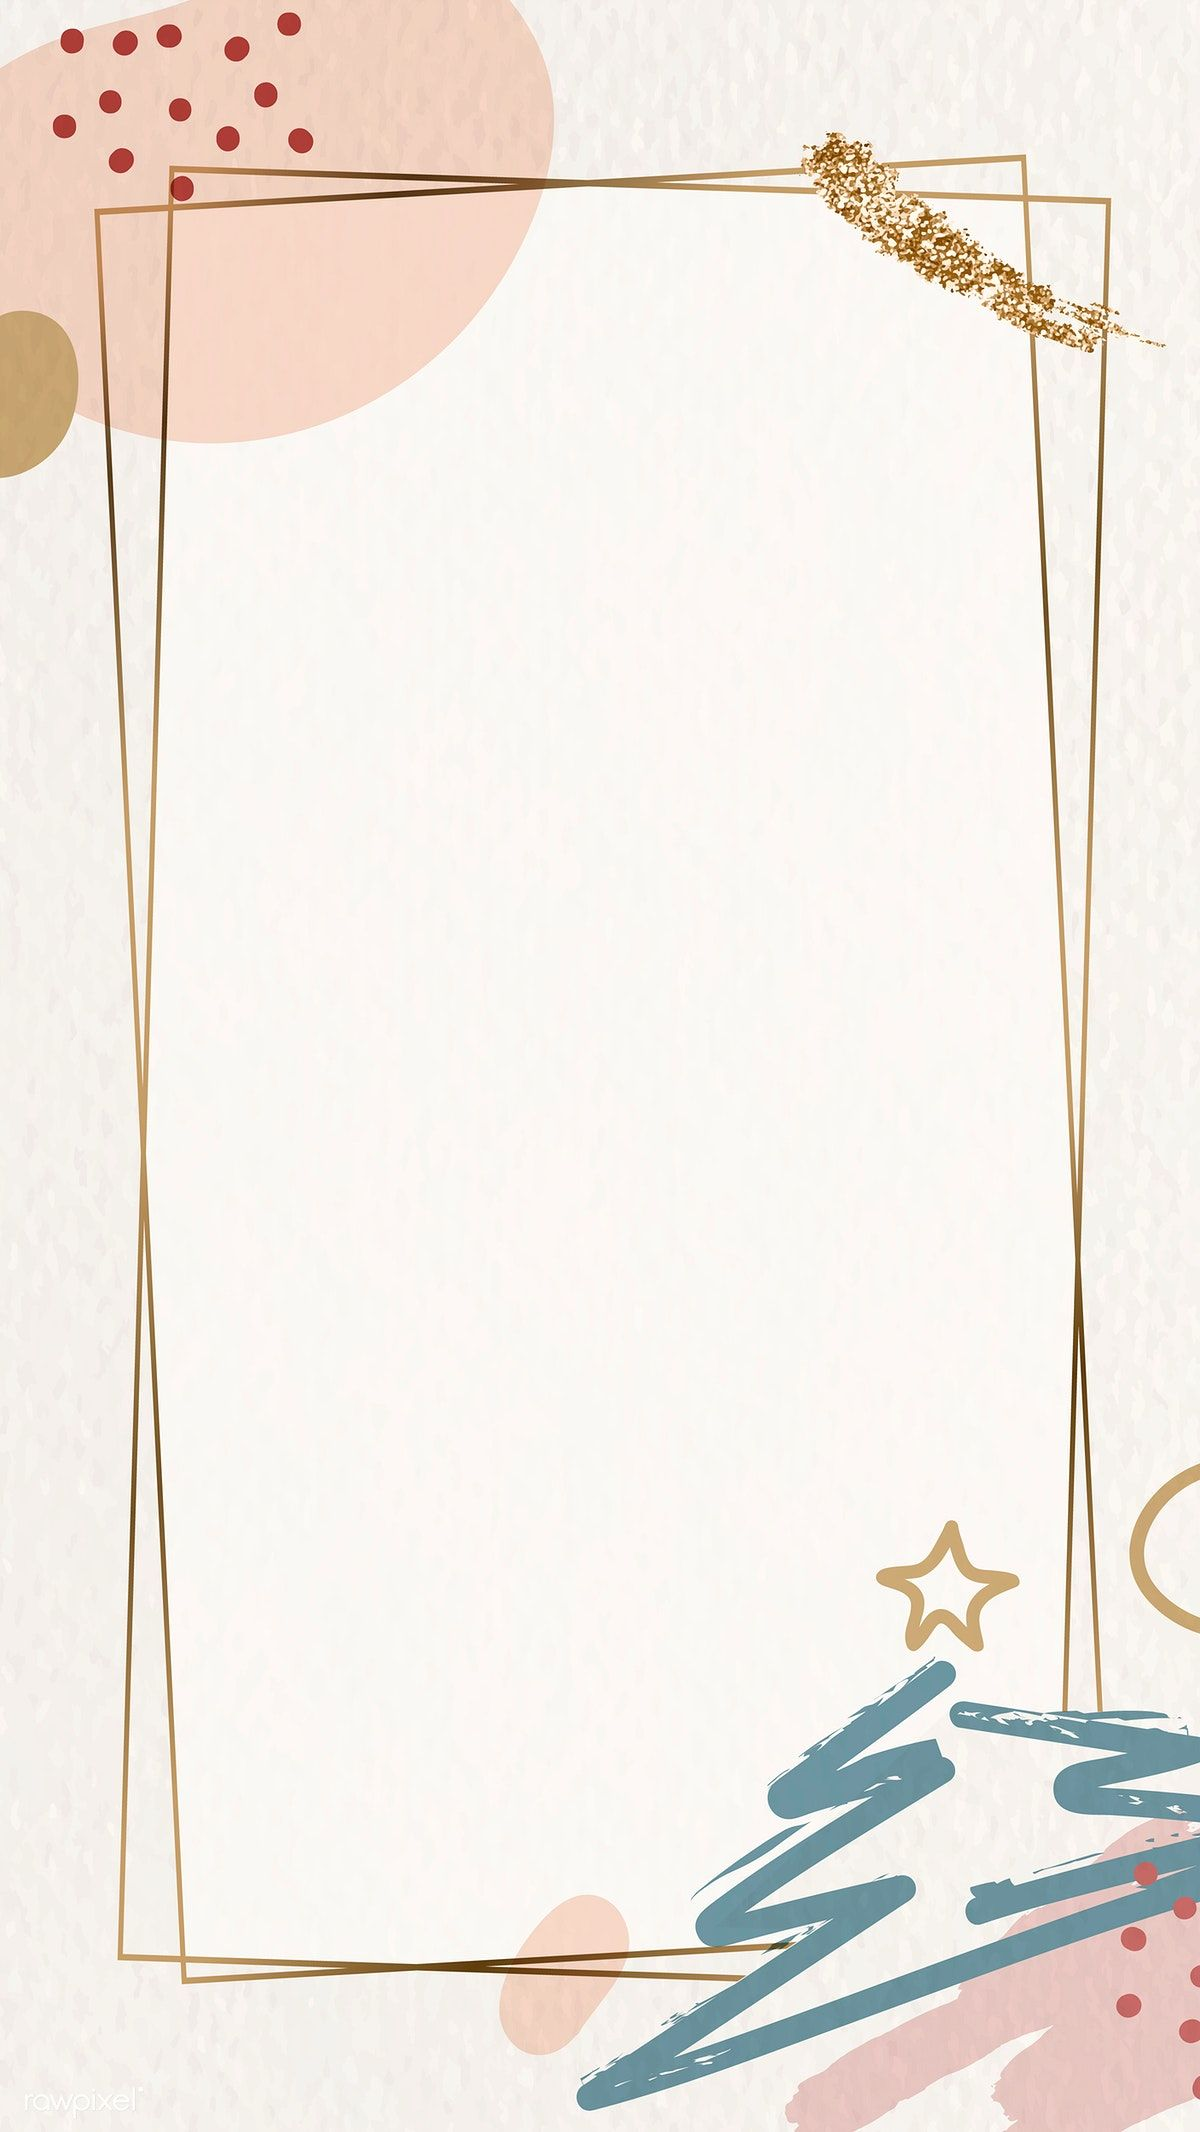 Download Premium Vector Of Gold Frame On Christmas Pattern Mobile Phone Christmas Phone Wallpaper Christmas Wallpaper Cute Christmas Wallpaper